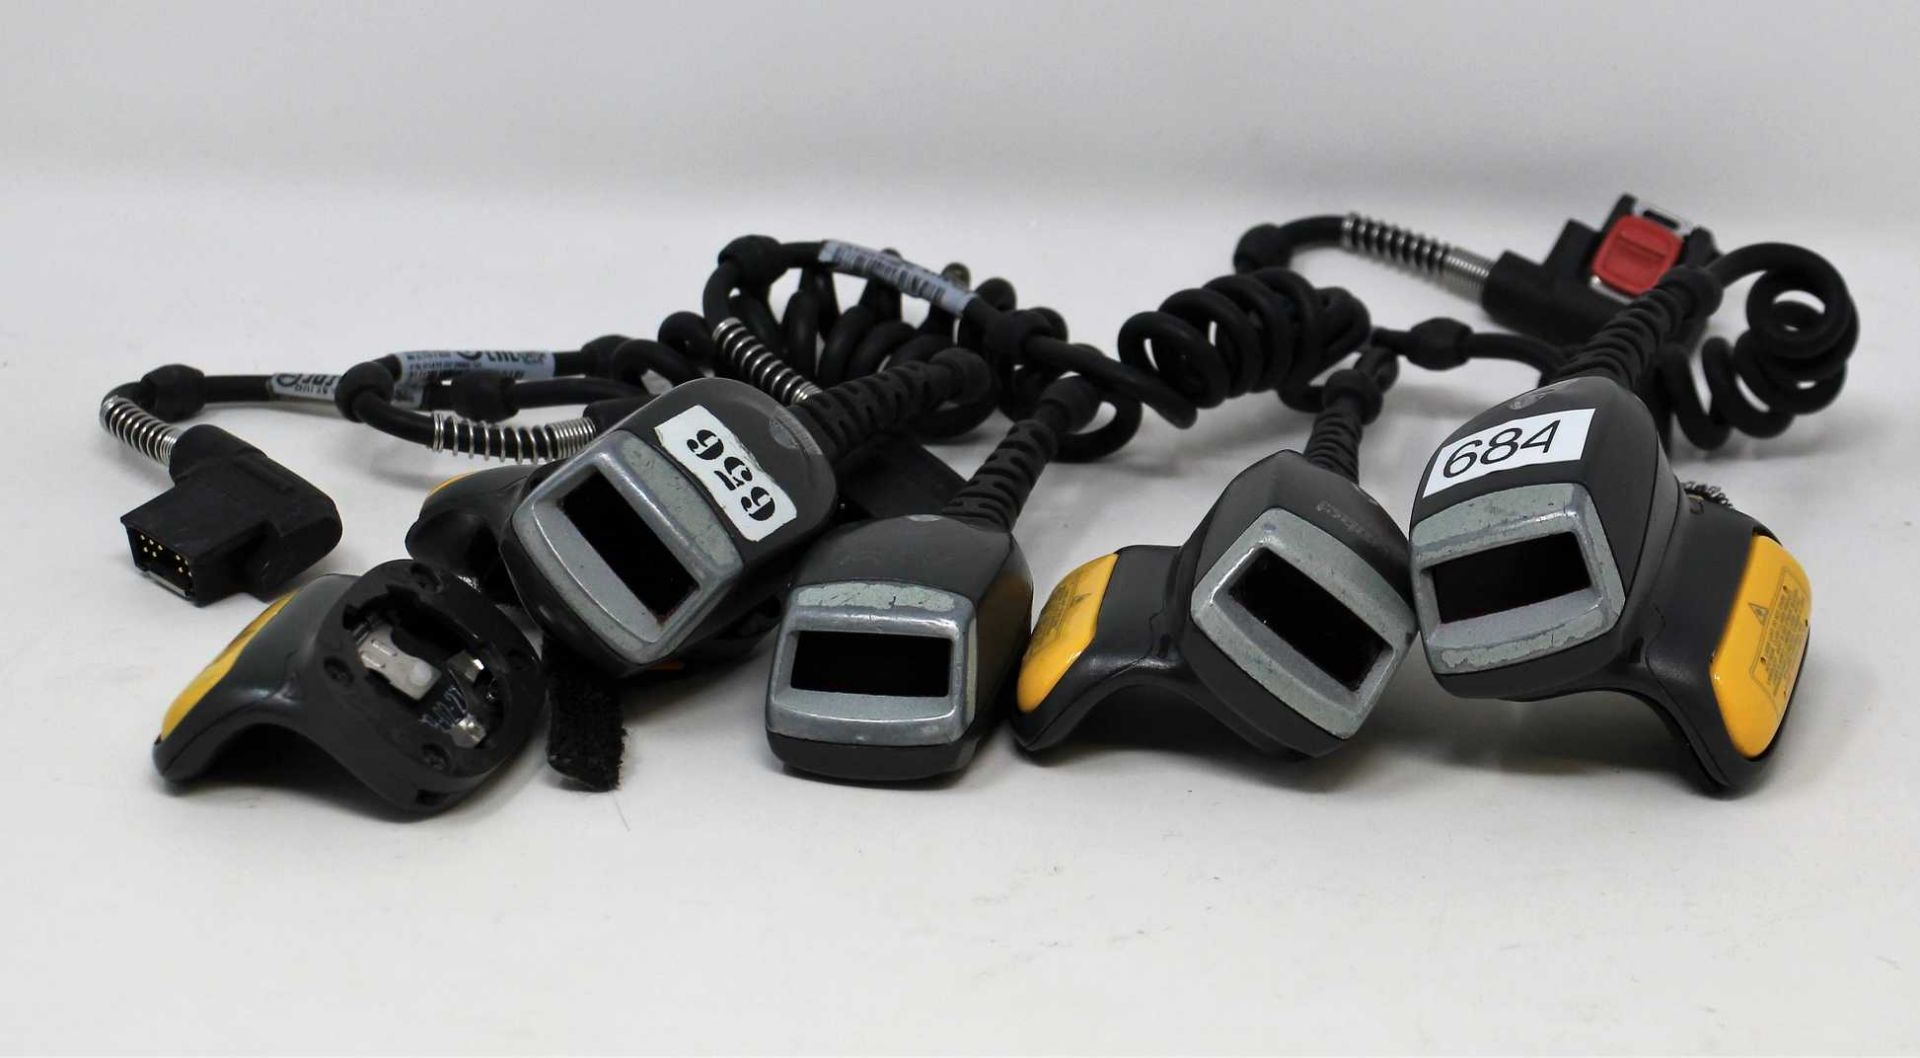 SOLD FOR PARTS: Four pre-owned Zebra RS419 Ring Barcode Scanners (M/N: RS419-HP2000FSR) (All